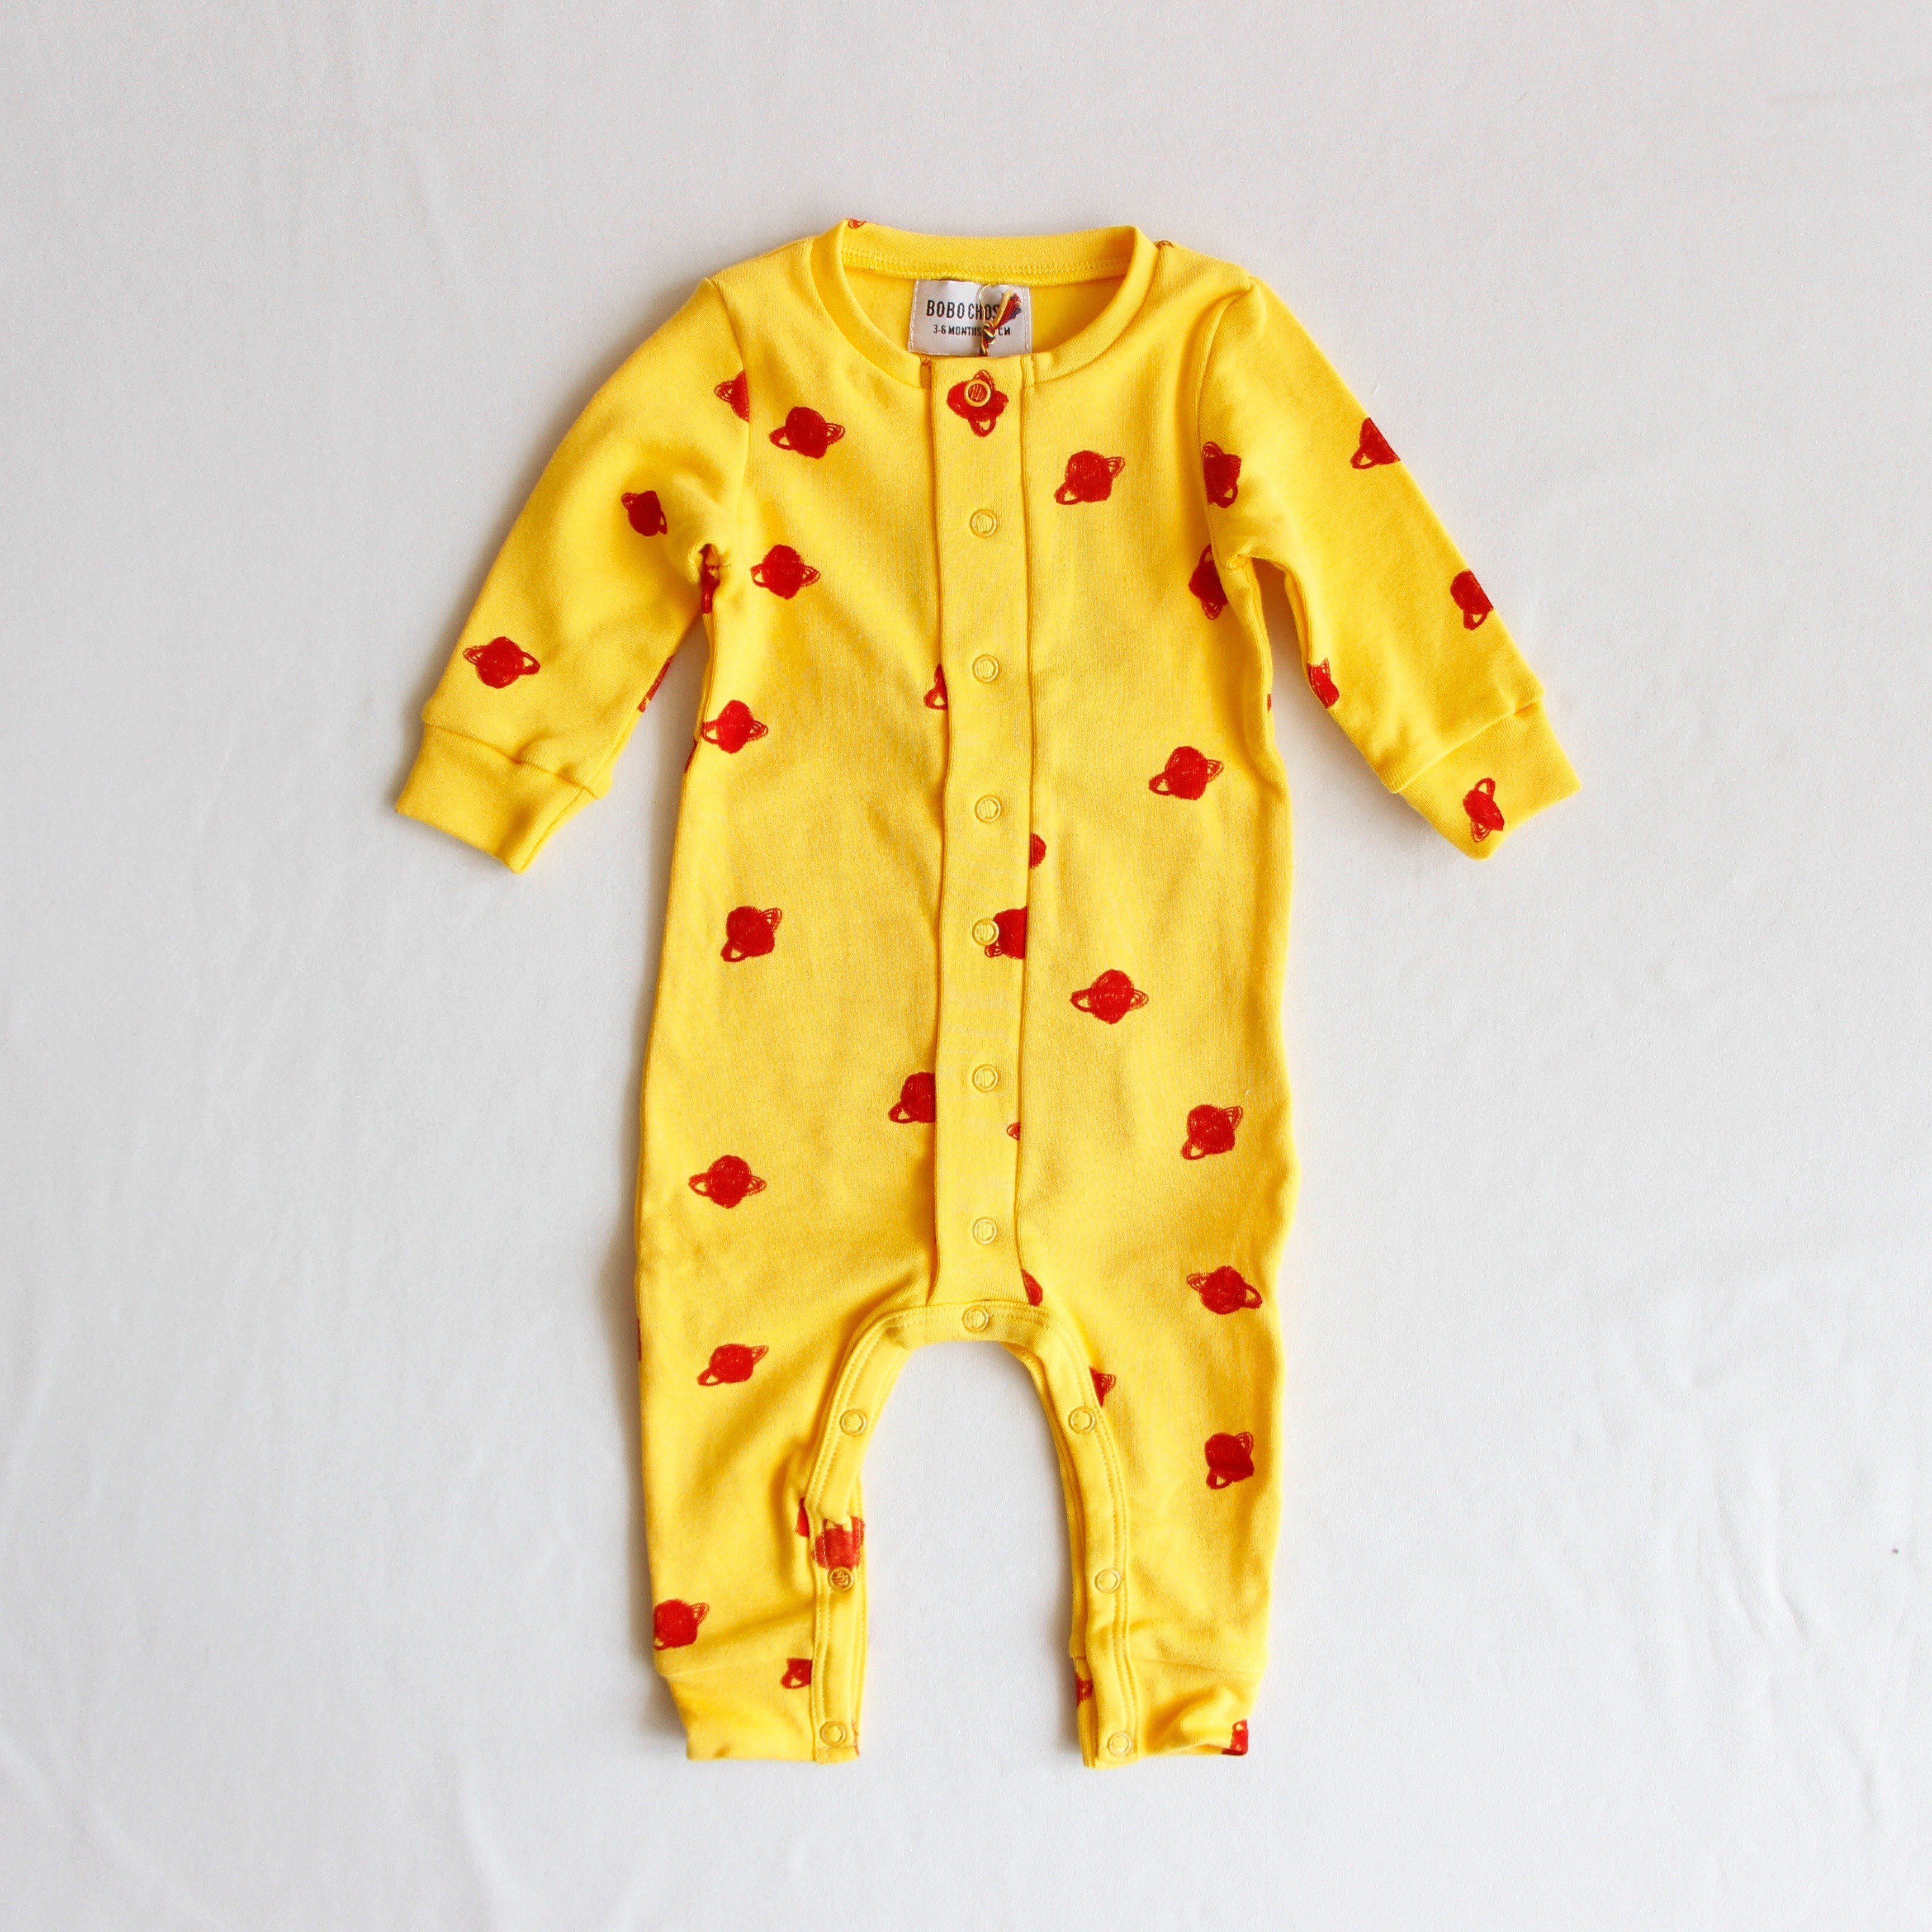 《BOBO CHOSES 2019AW》All Over Small Saturn jumpsuit / 3-6M